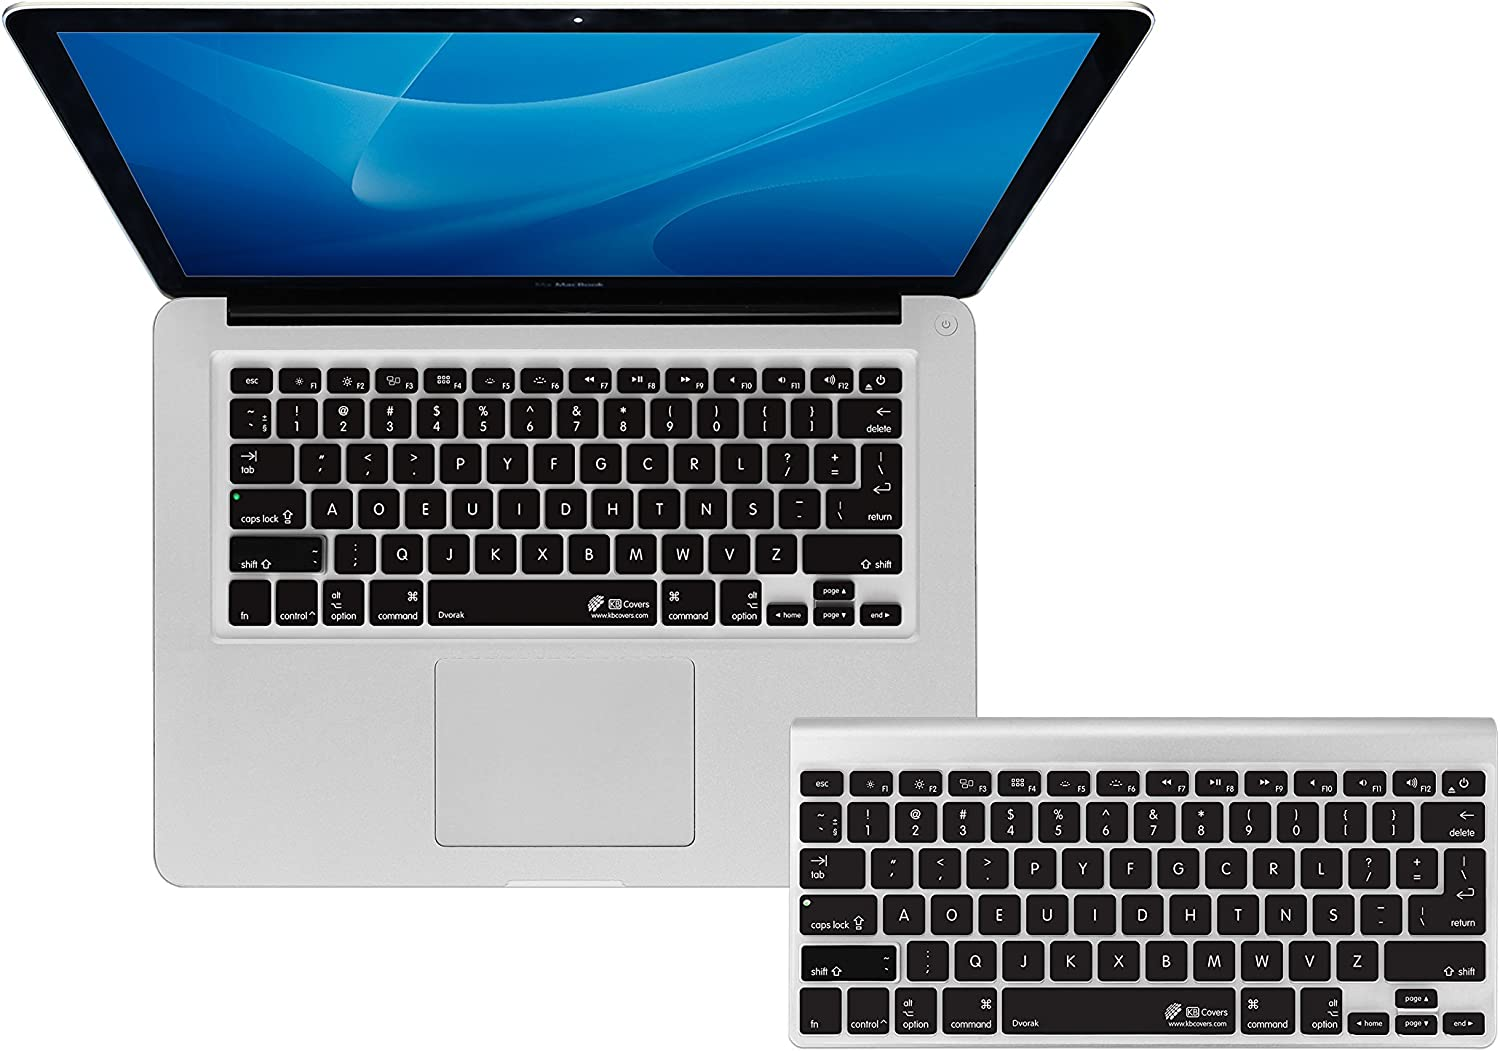 KBCovers - Keyboard Cover for Dvorak fits MacBook Pro 13, 15 and 17 inch (2008-2015)